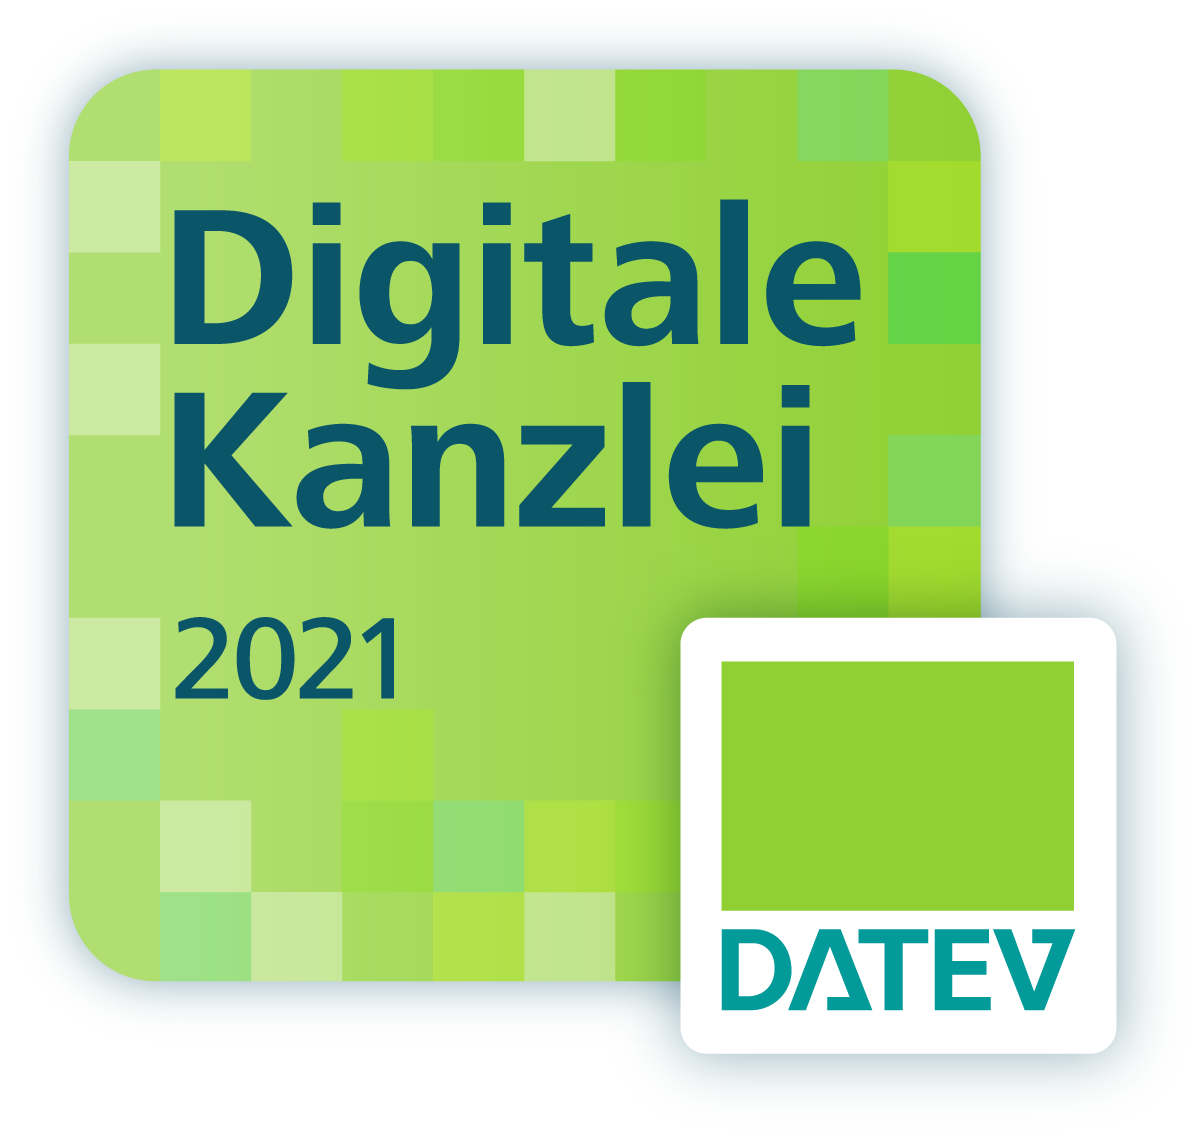 Digitale Kanzlei 2021